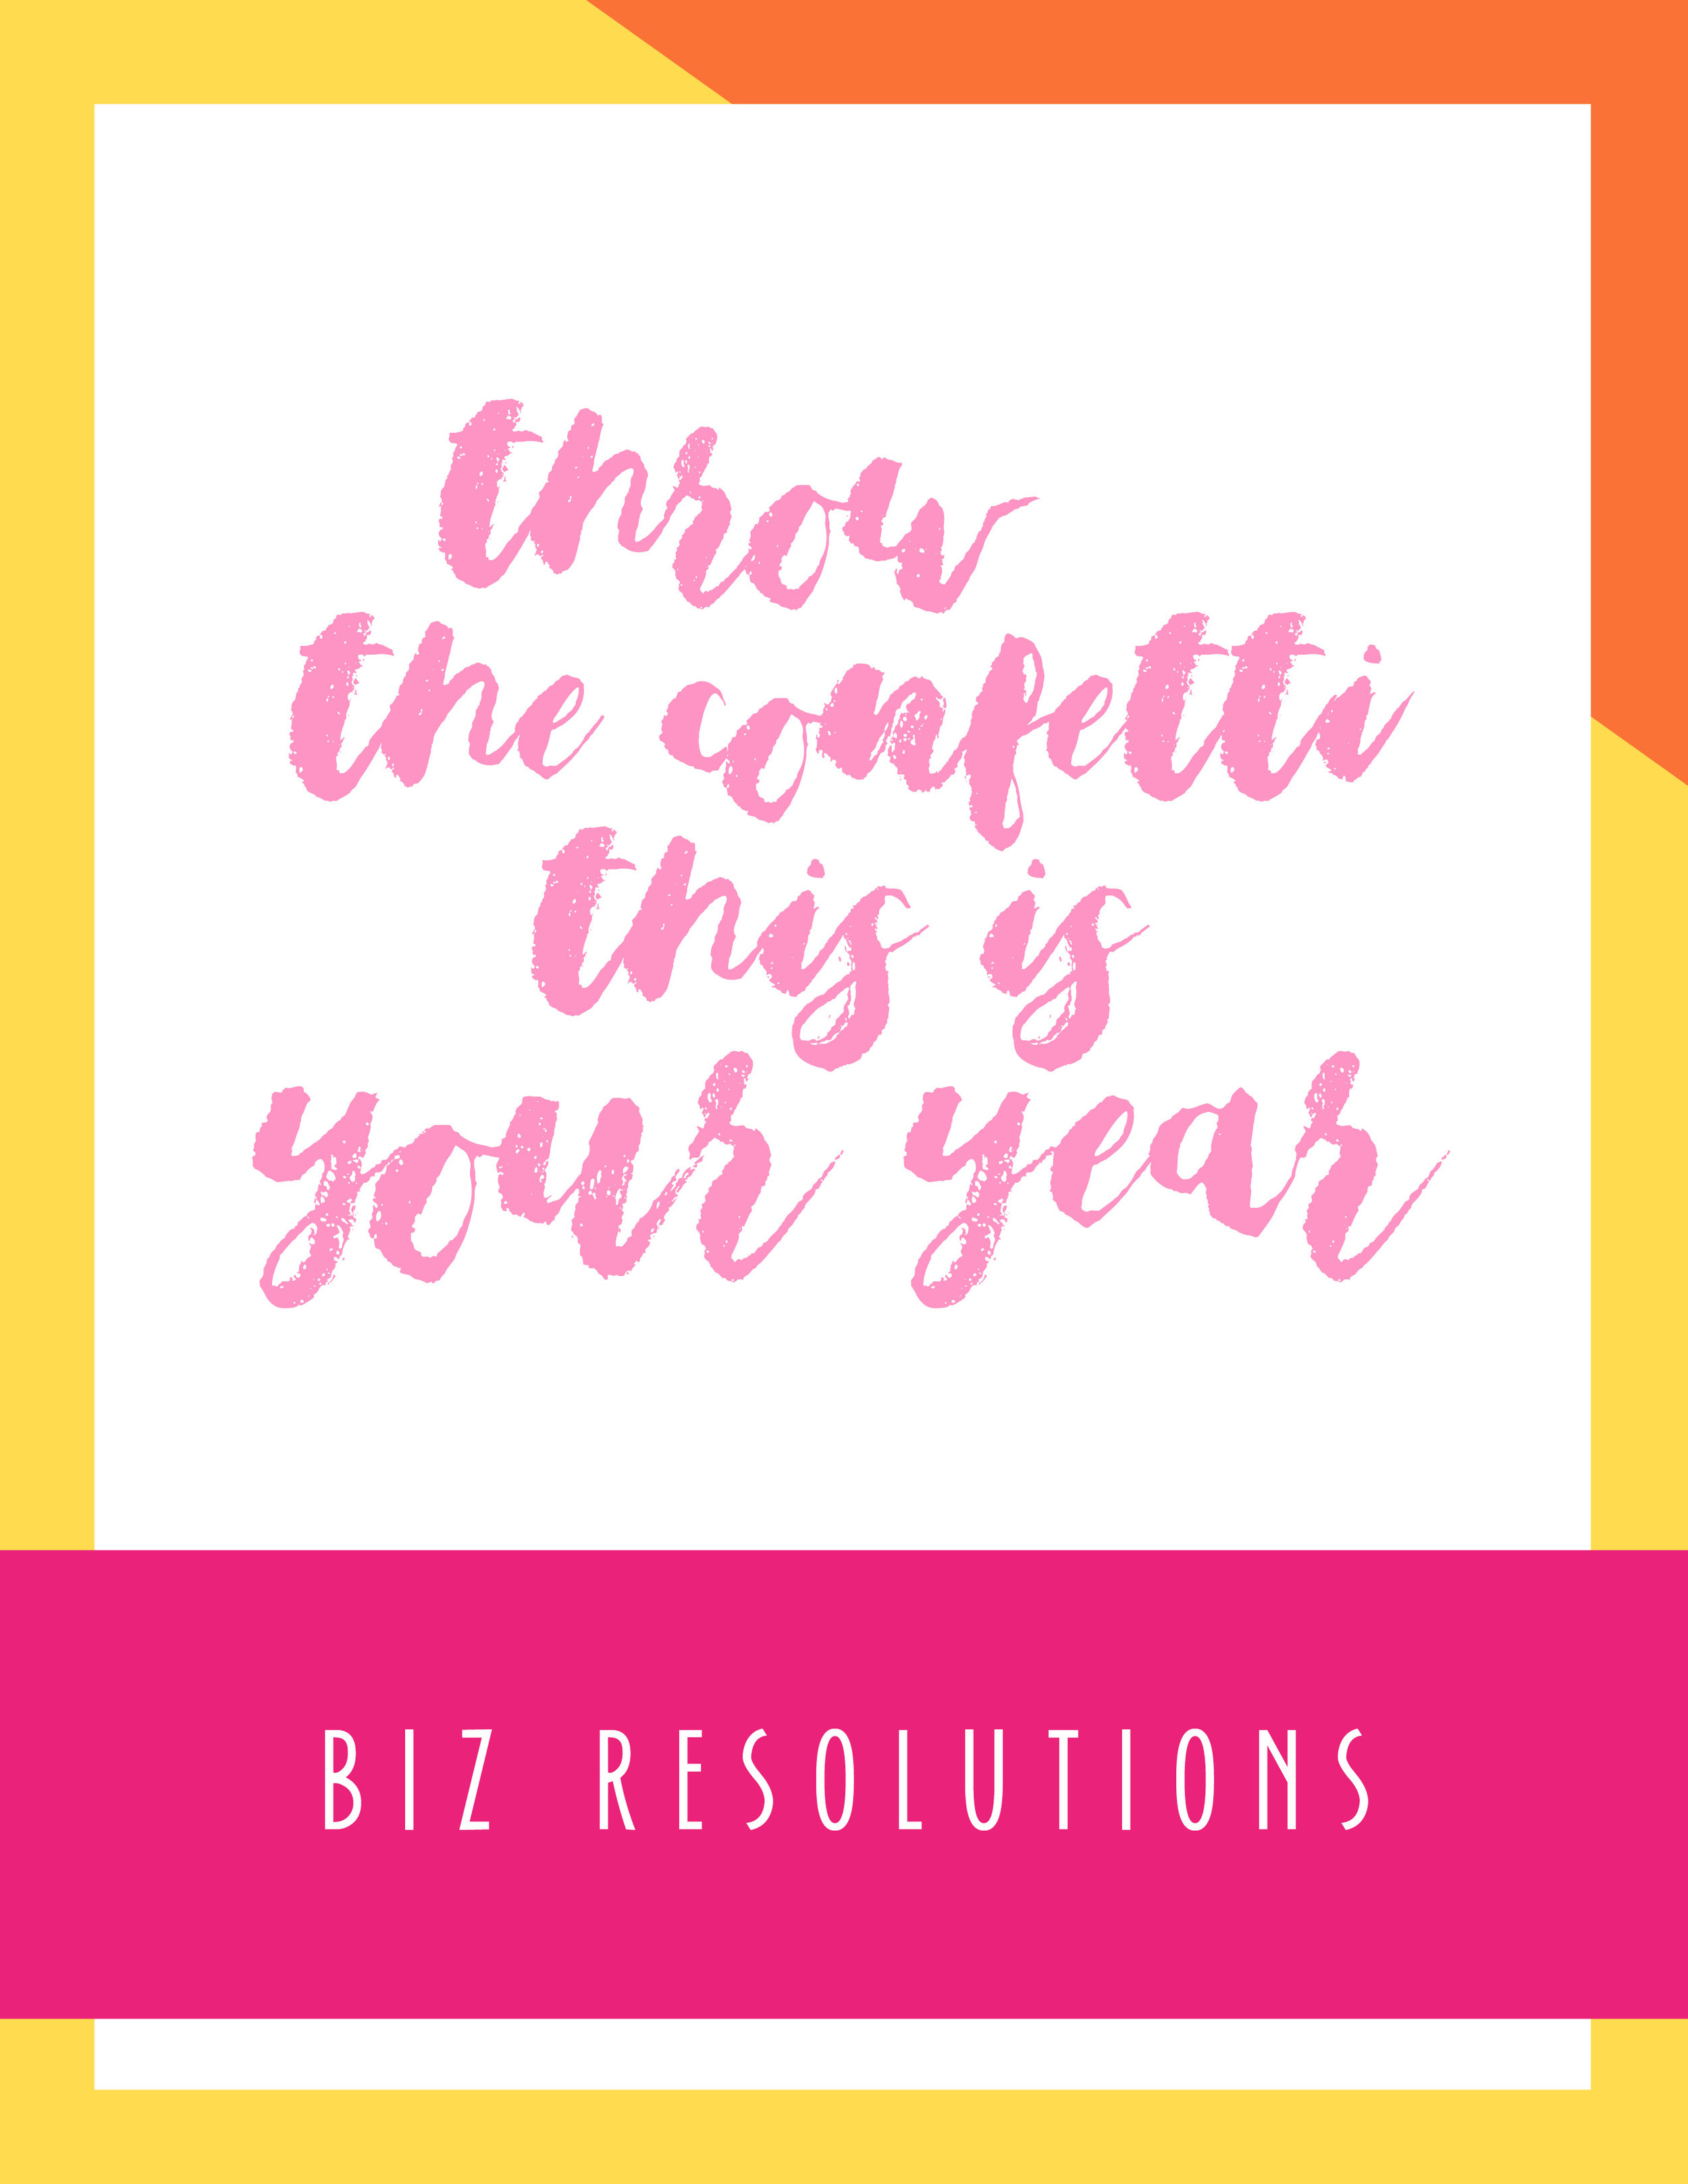 Bold & Pop Freebies Throw Confetti This is Your Year Biz Resolutions